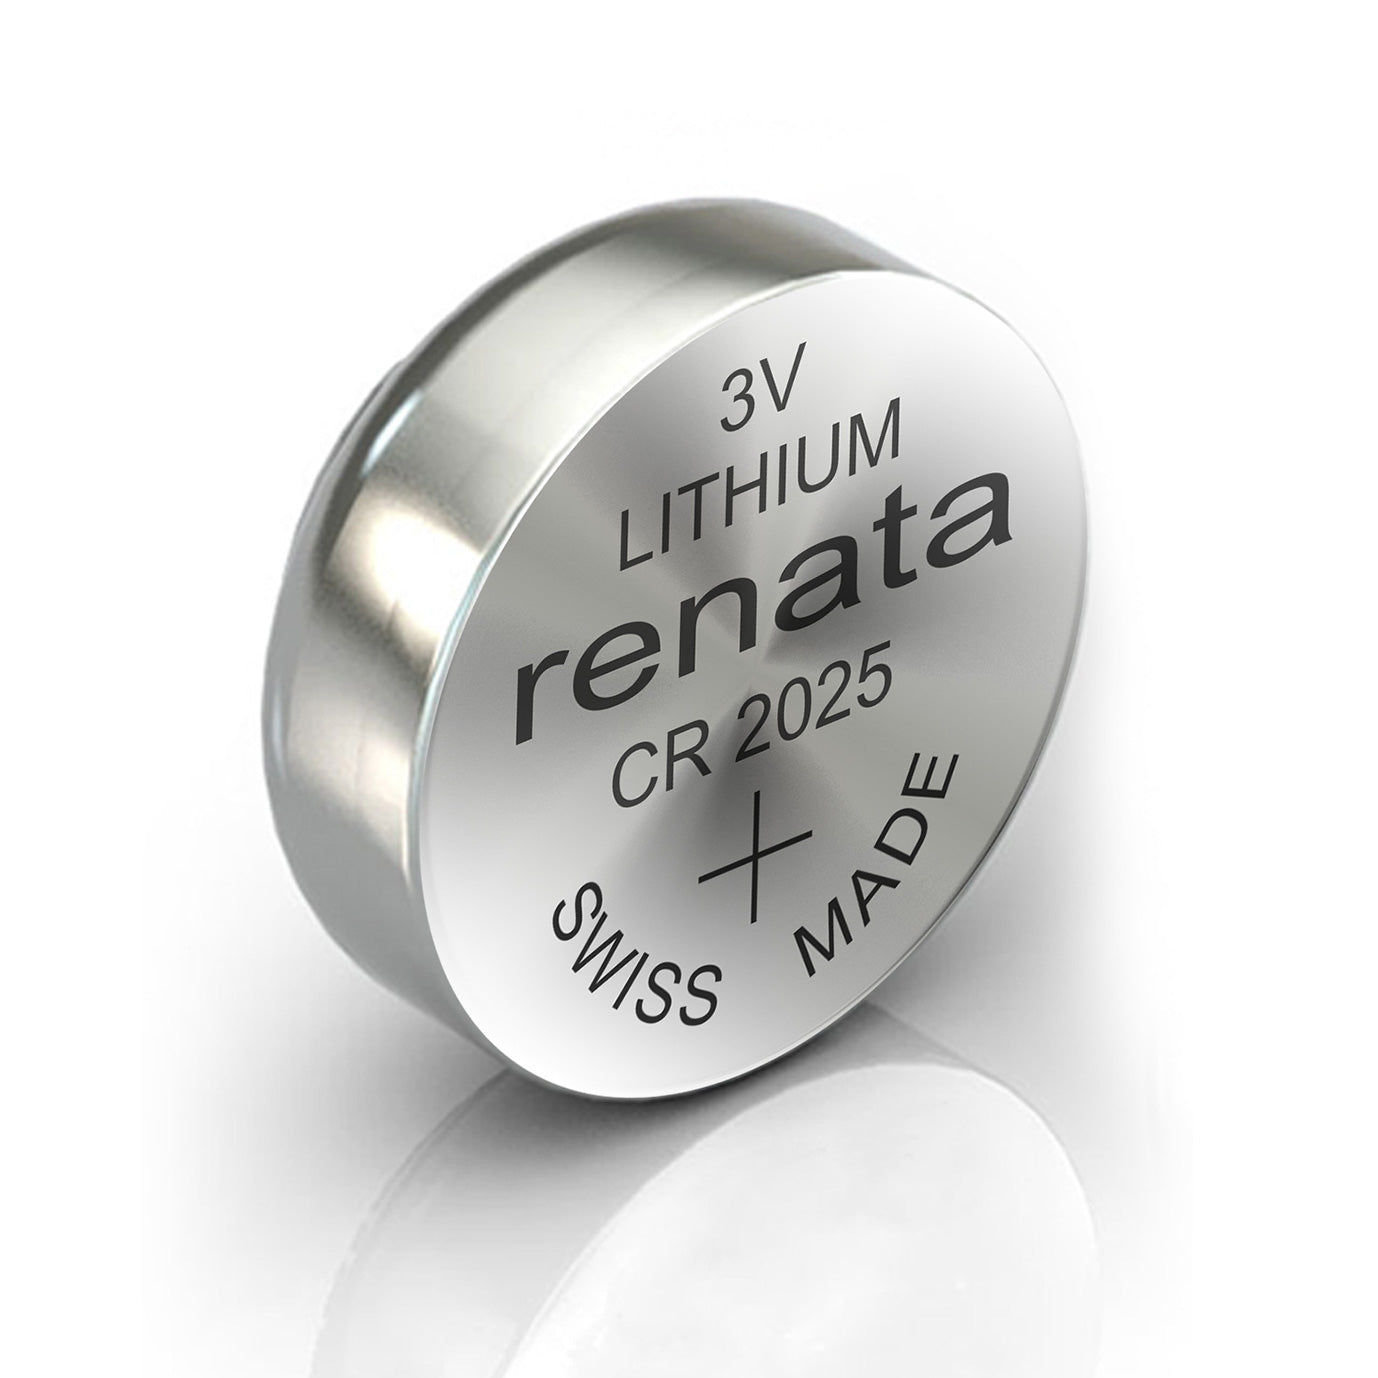 4x Renata CR2025 Watch battery 3V Swiss Made Silver Oxide Lithium, Electronics by TradeNRG